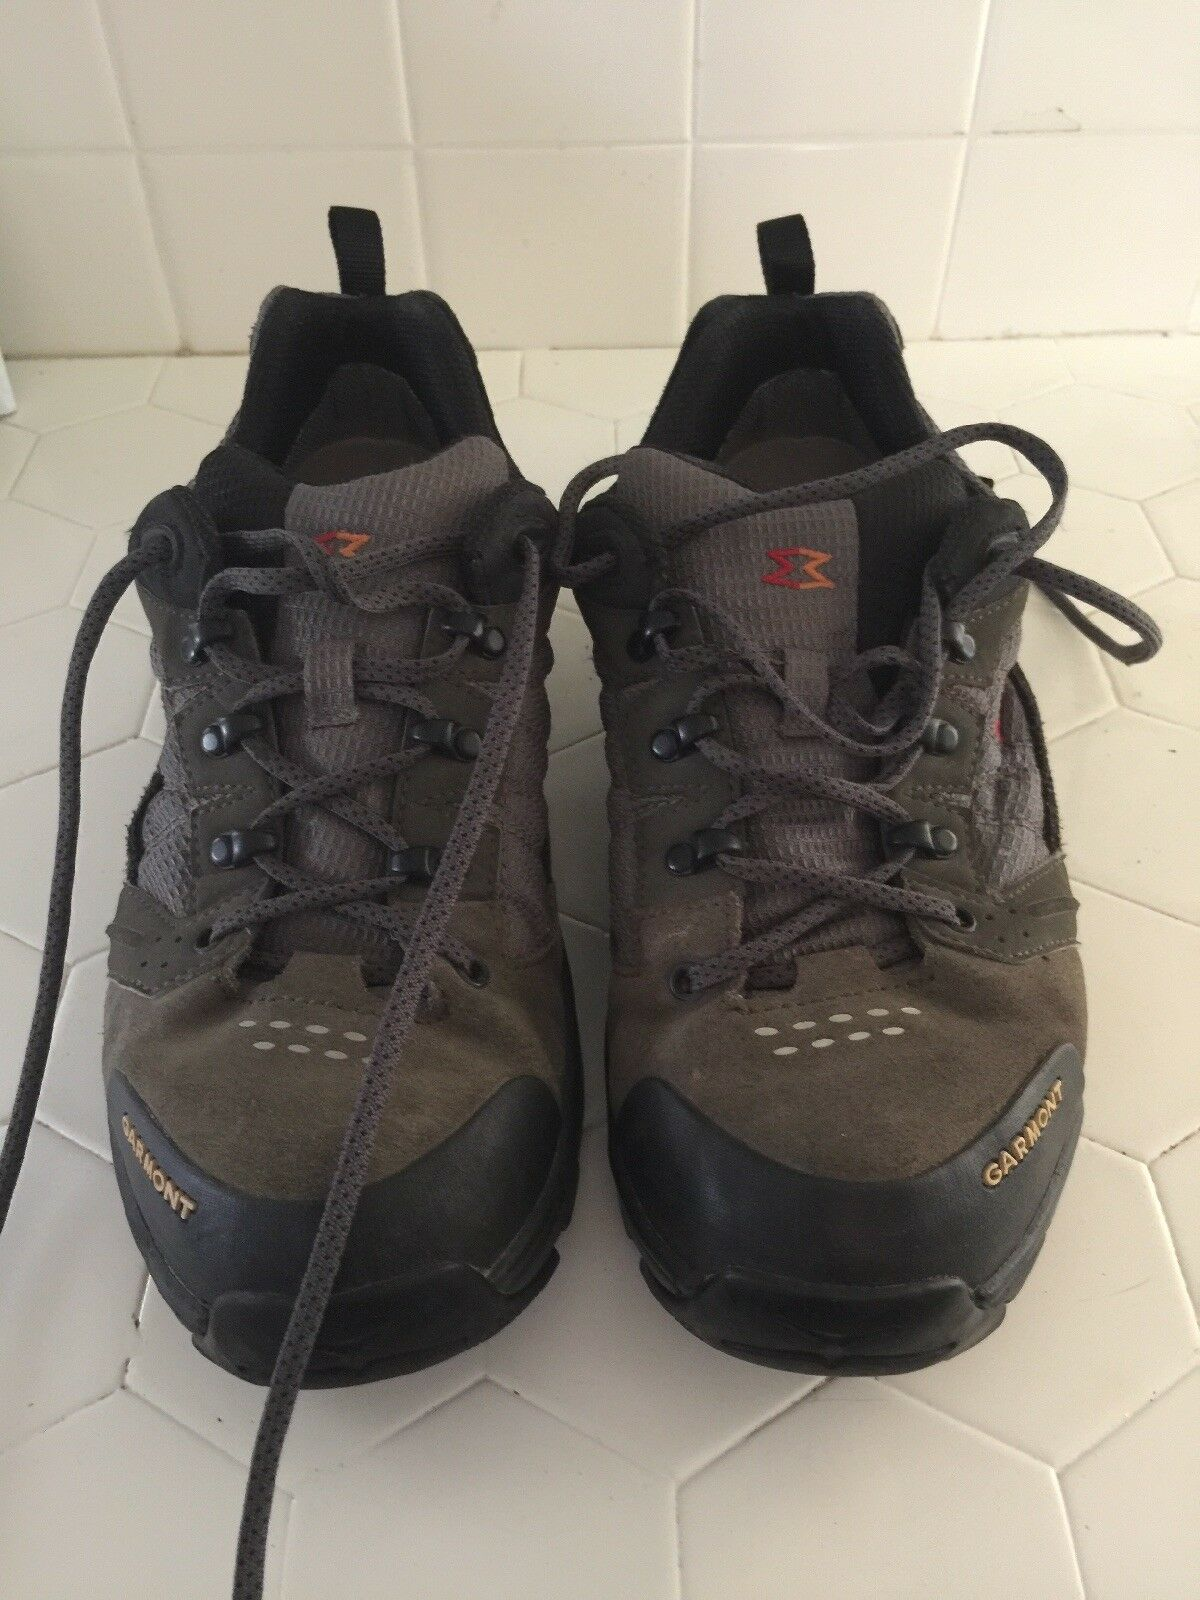 Mens Garmont Gore-Tex VIBRAM SOLE Waterproof Hiking Trail shoes Size US 9   EUC